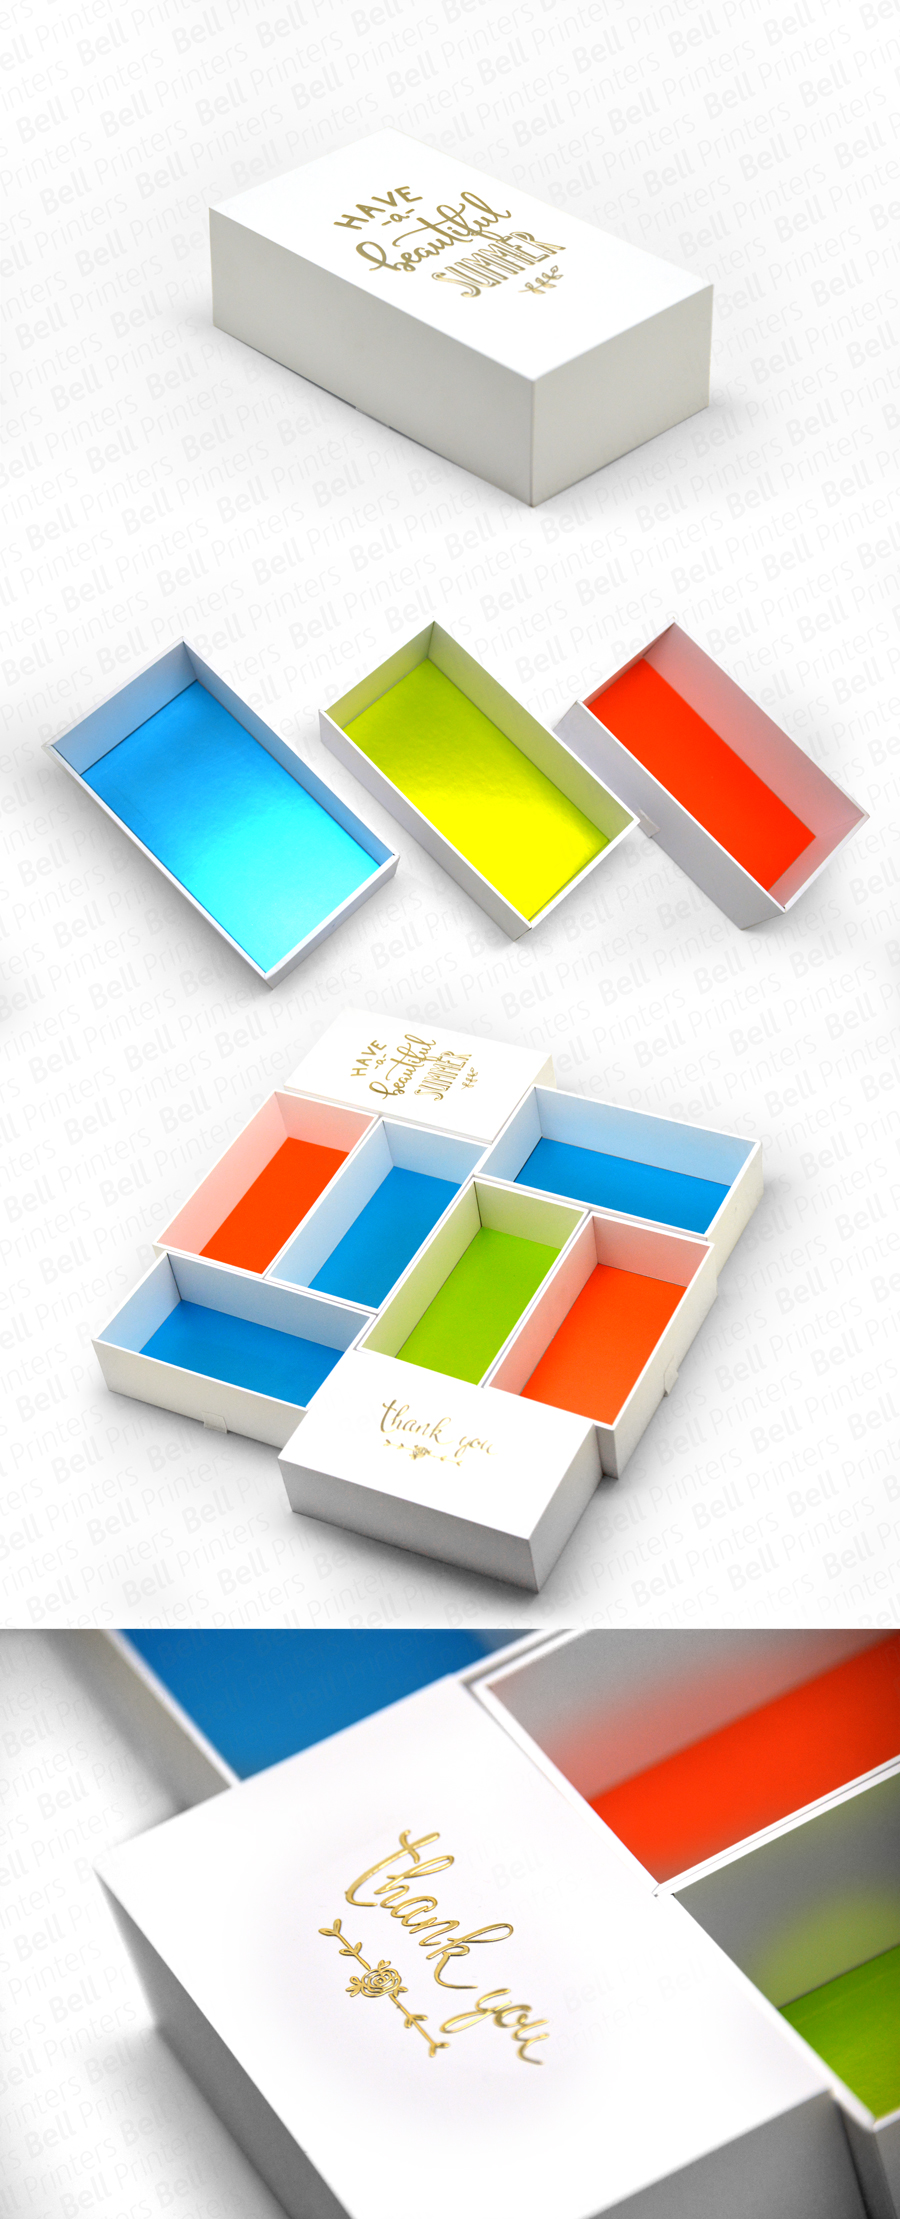 Luxury Packaging Boxes Supplier usa | Rigid box Manufacturer